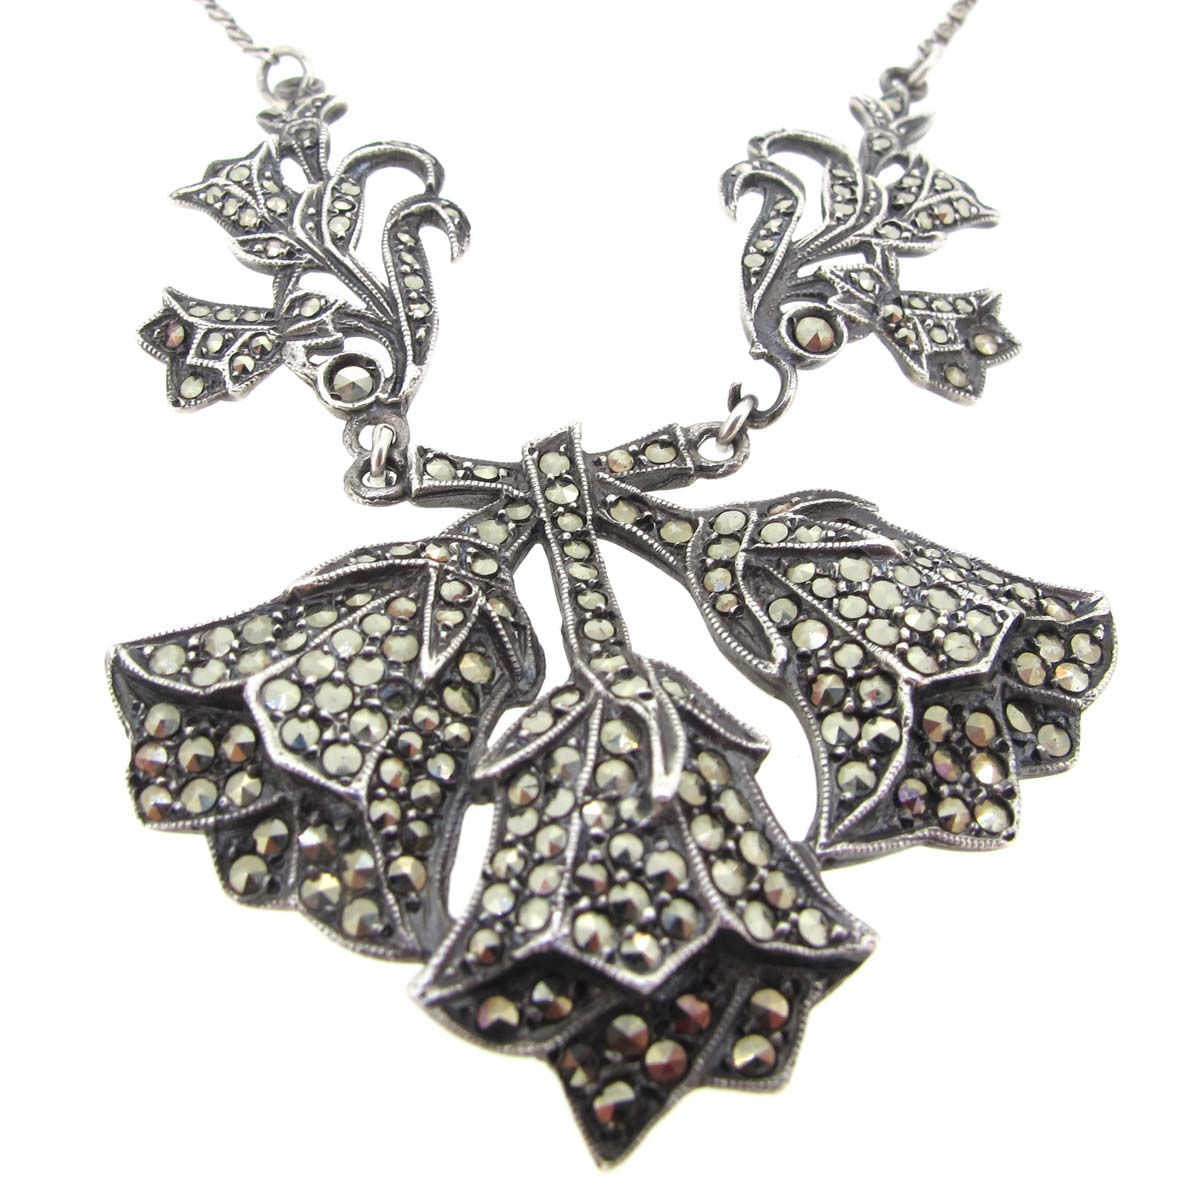 silver & marcassite necklace